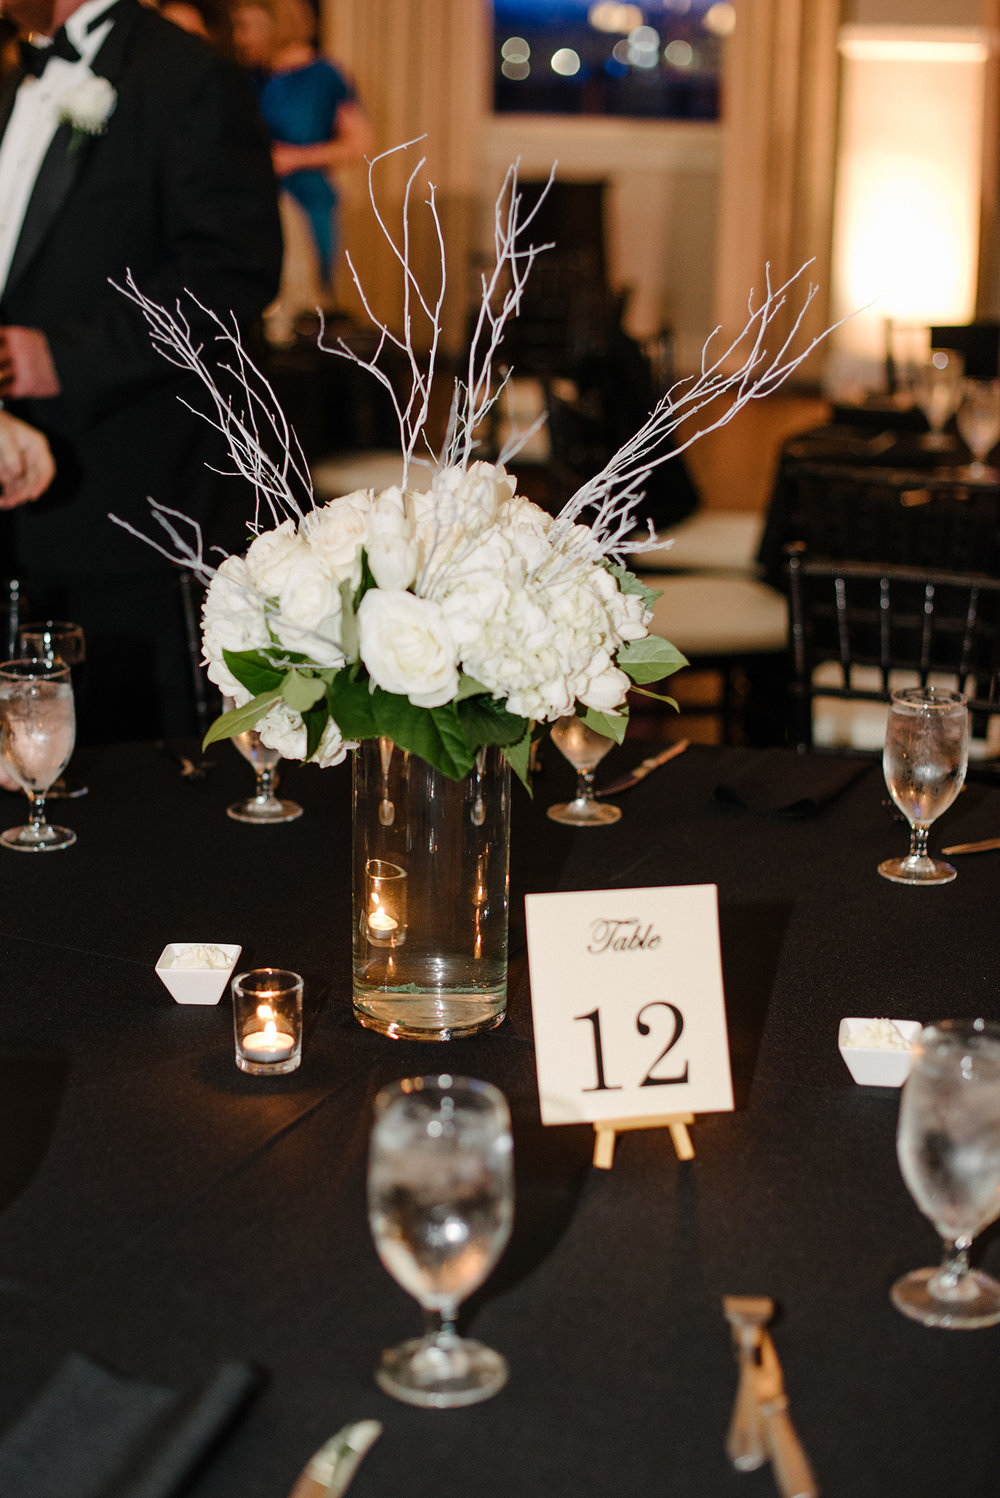 Dallas Wedding Planner - Winter Wedding at The Room on Main - Allday Events - 25.jpg